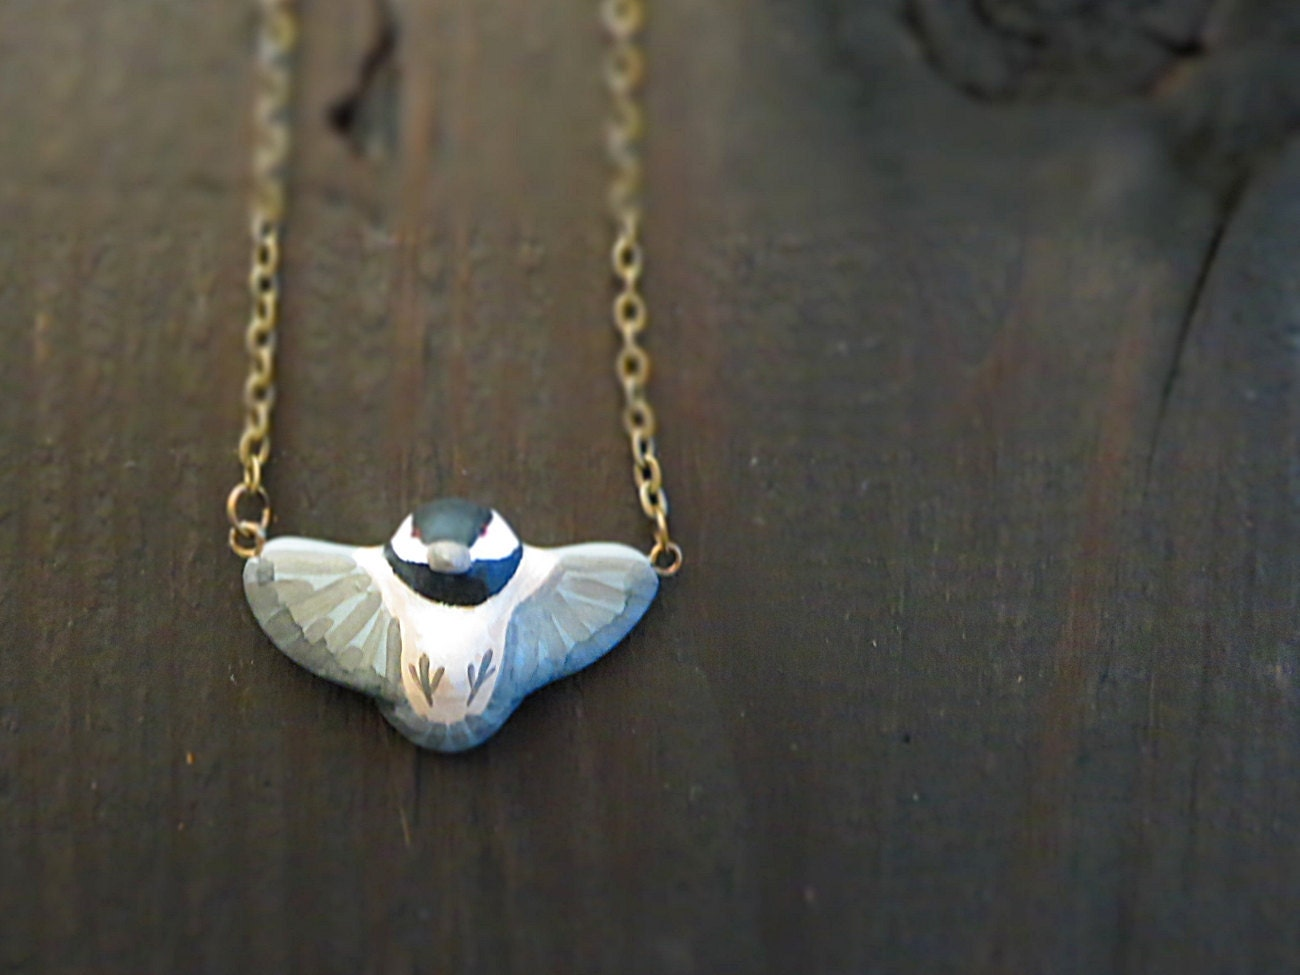 Chickadee in flight necklace - HandyMaiden